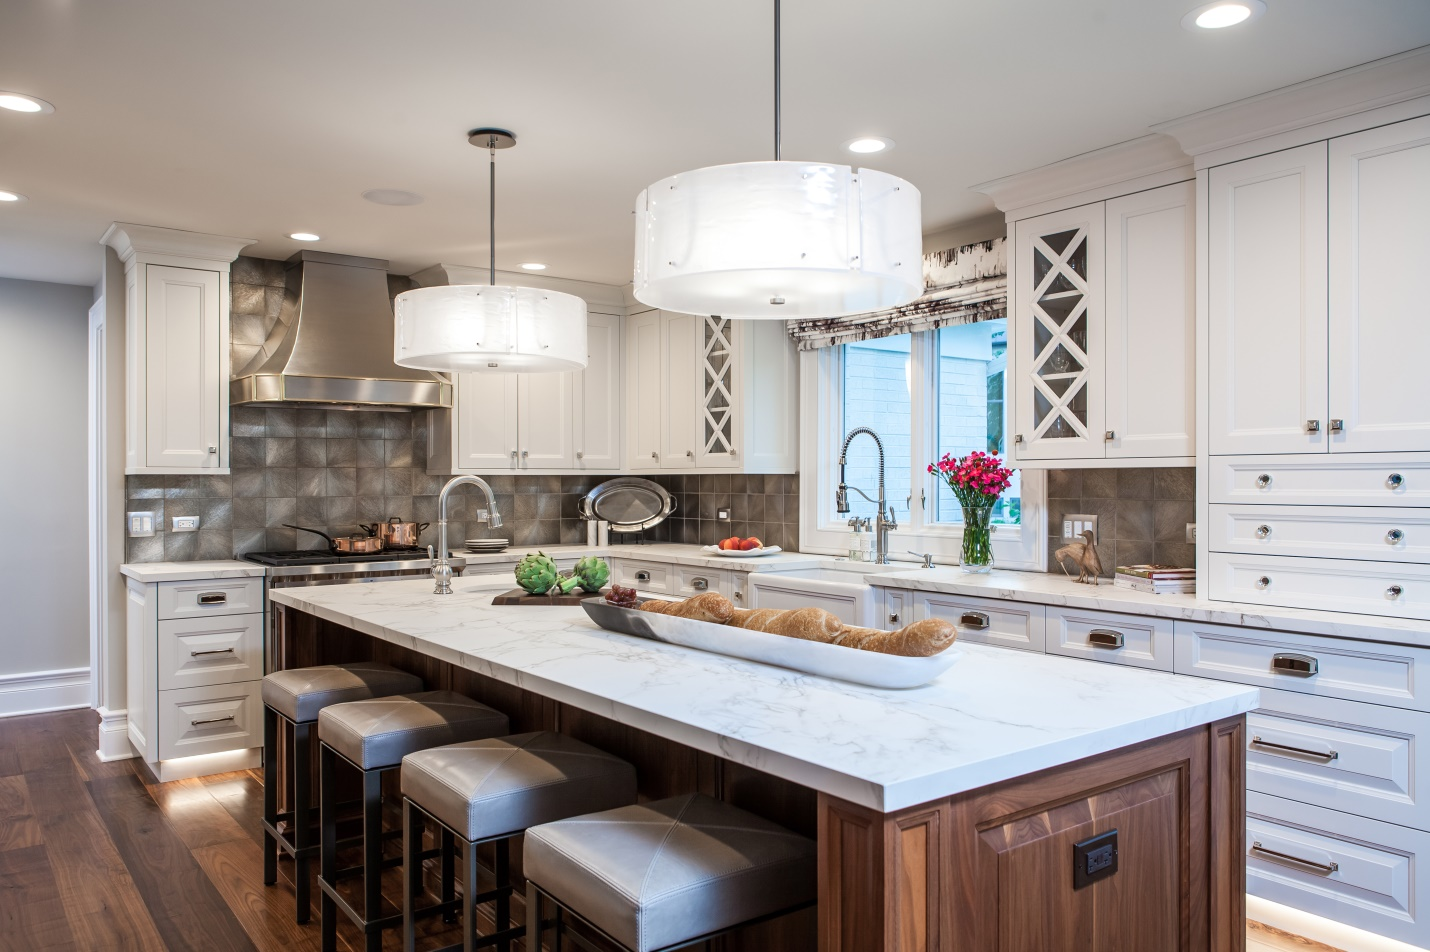 opaque qhite glass pendants over kitchen island